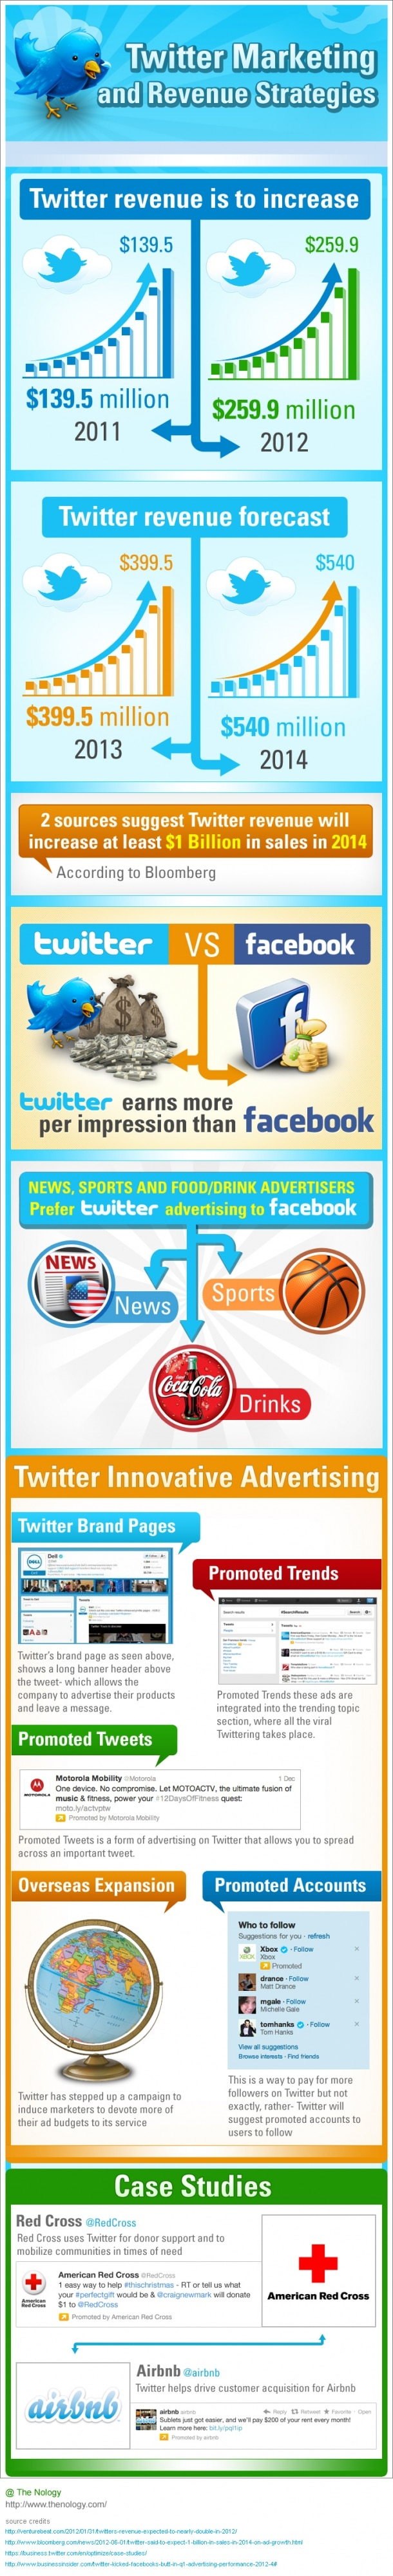 Twitter Marketing & Revenue Strategies [Infographic]